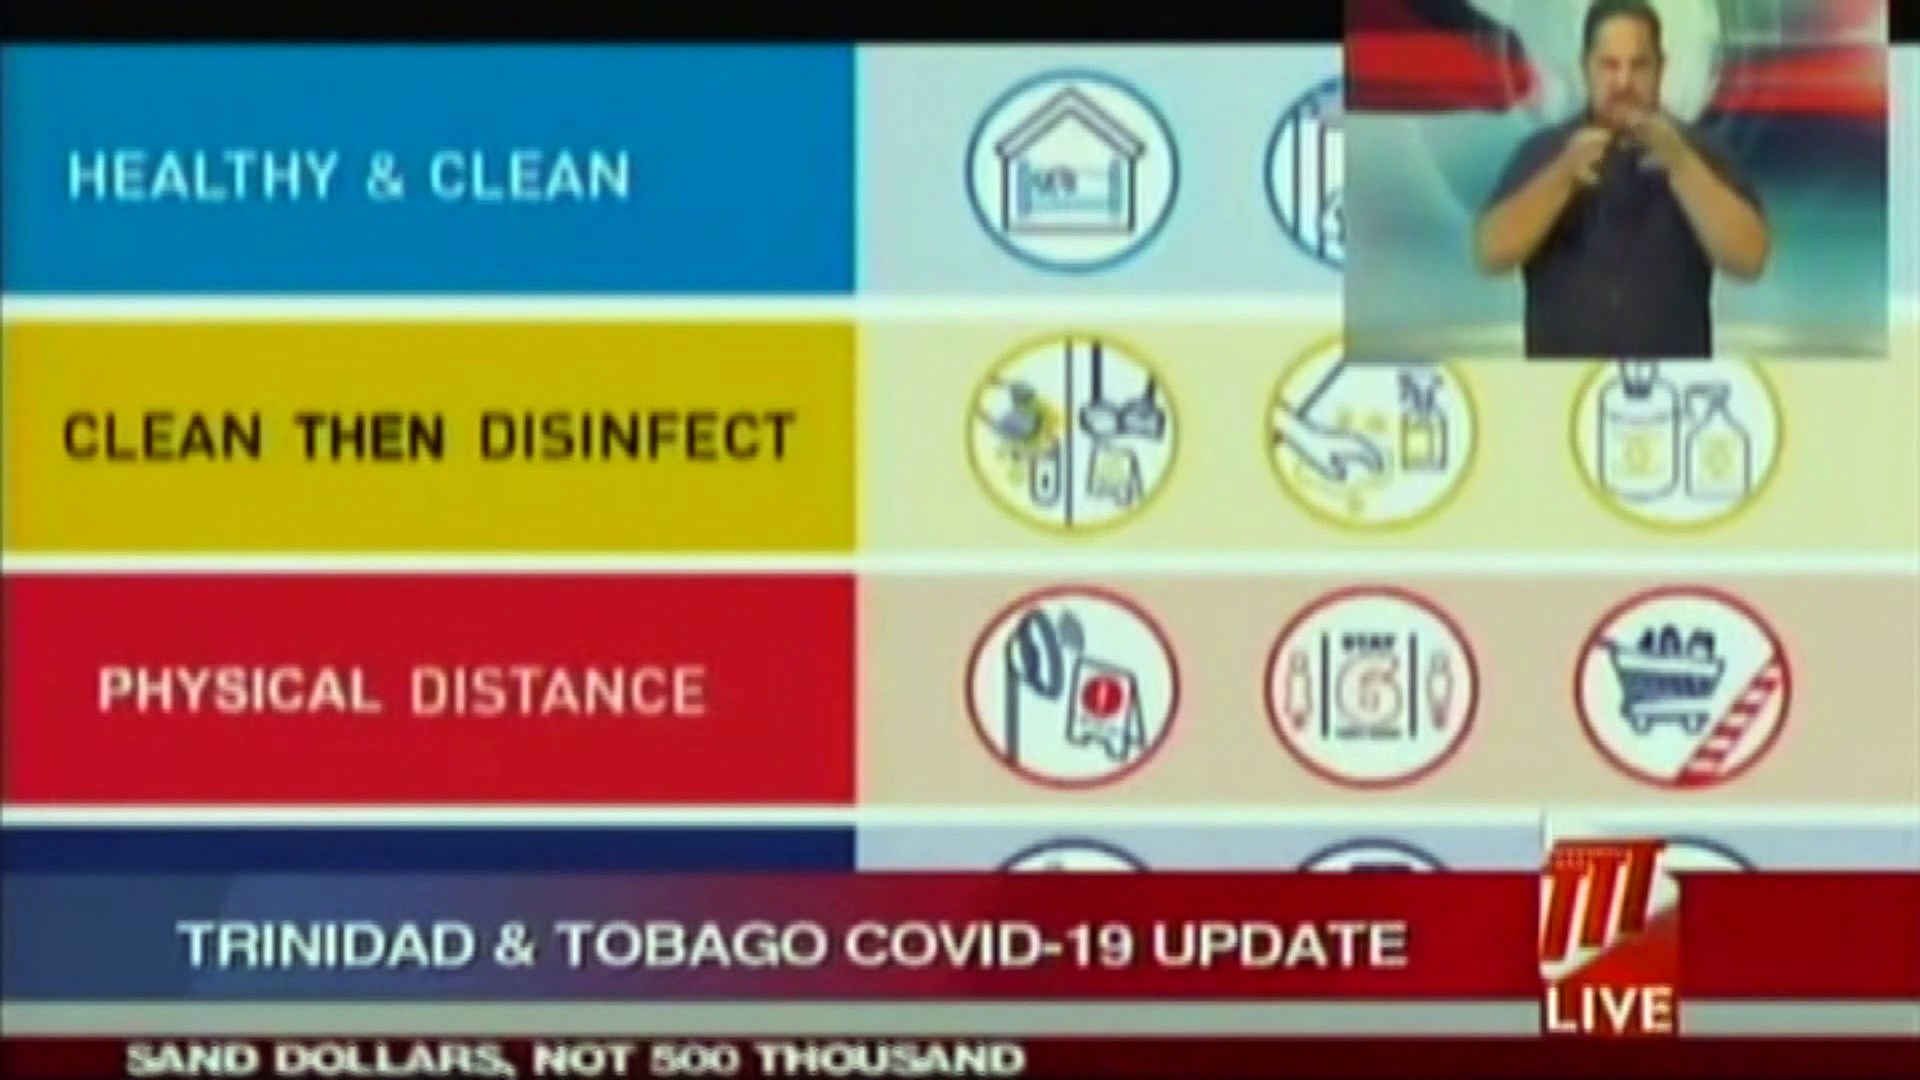 HEALTH GUIDELINES FOR FOOD SERVICE SECTOR